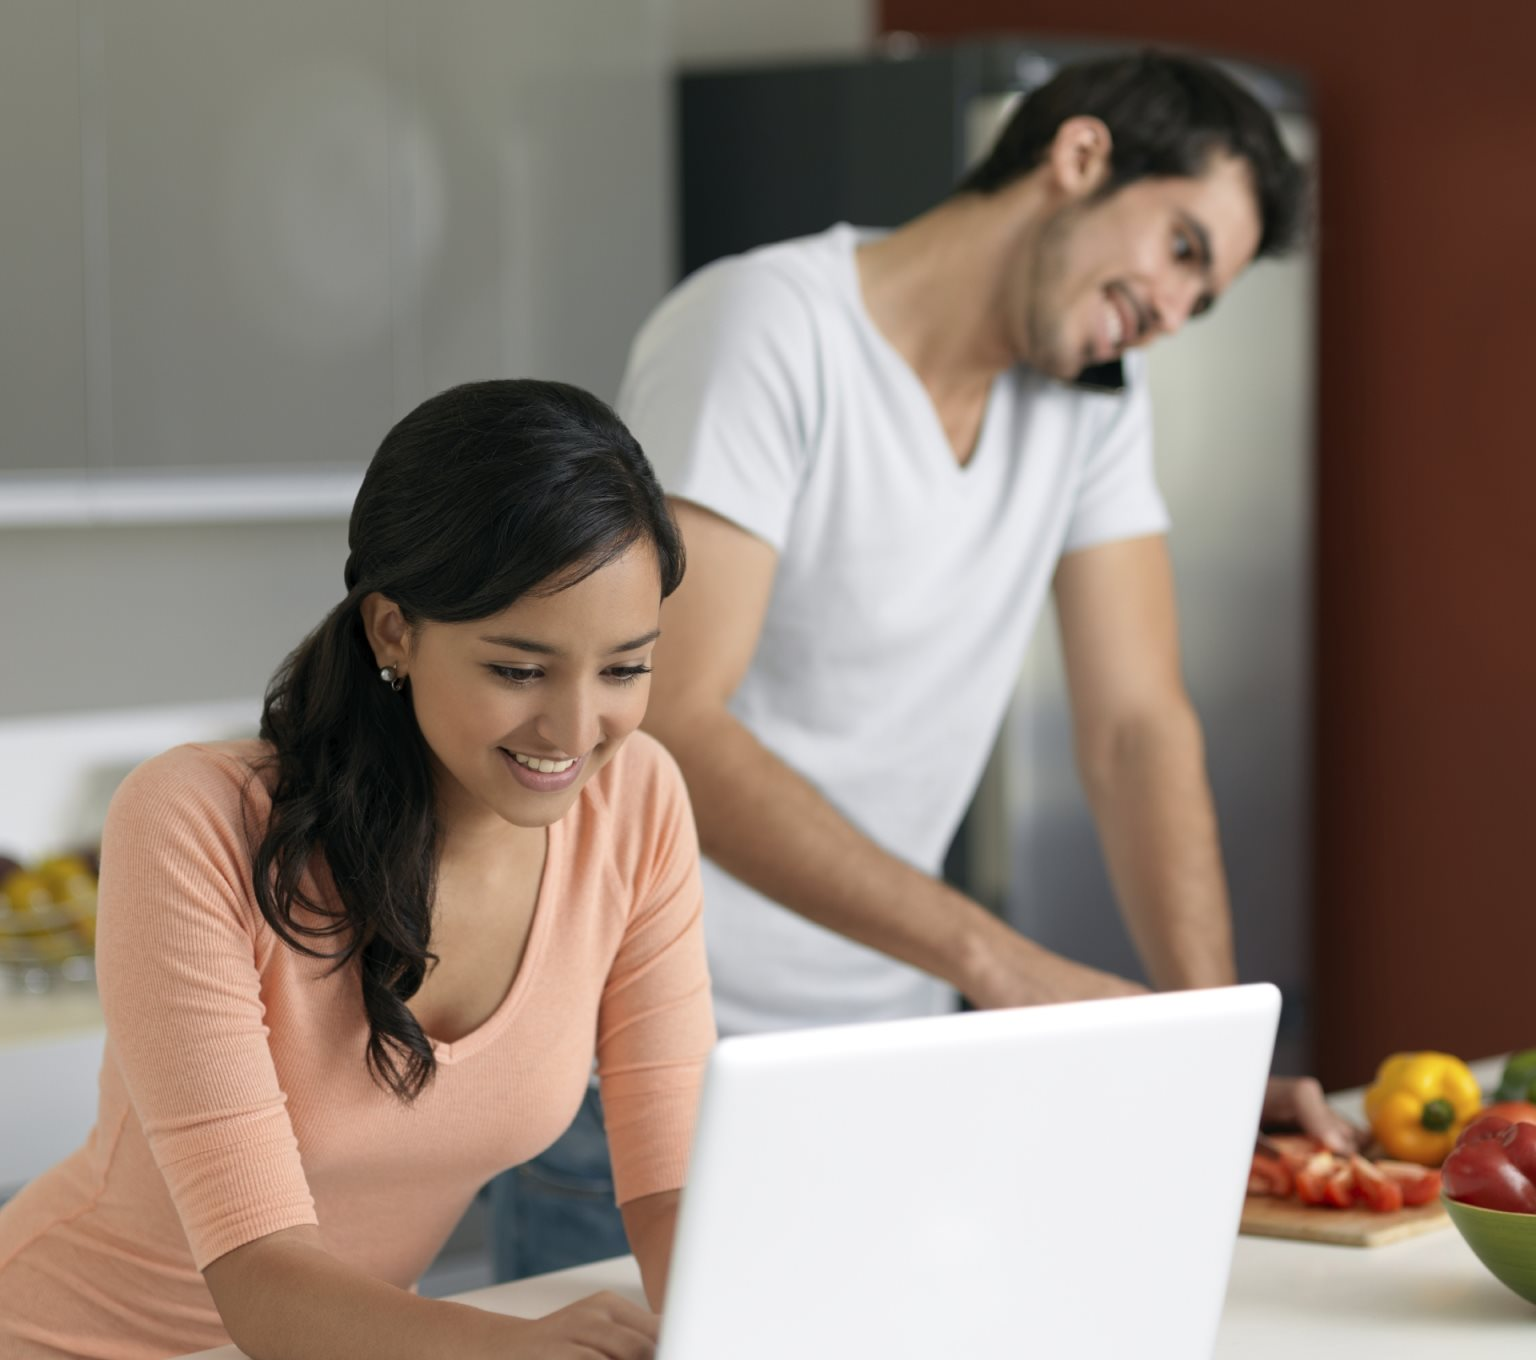 Woman on laptop while man chops vegetables on phone